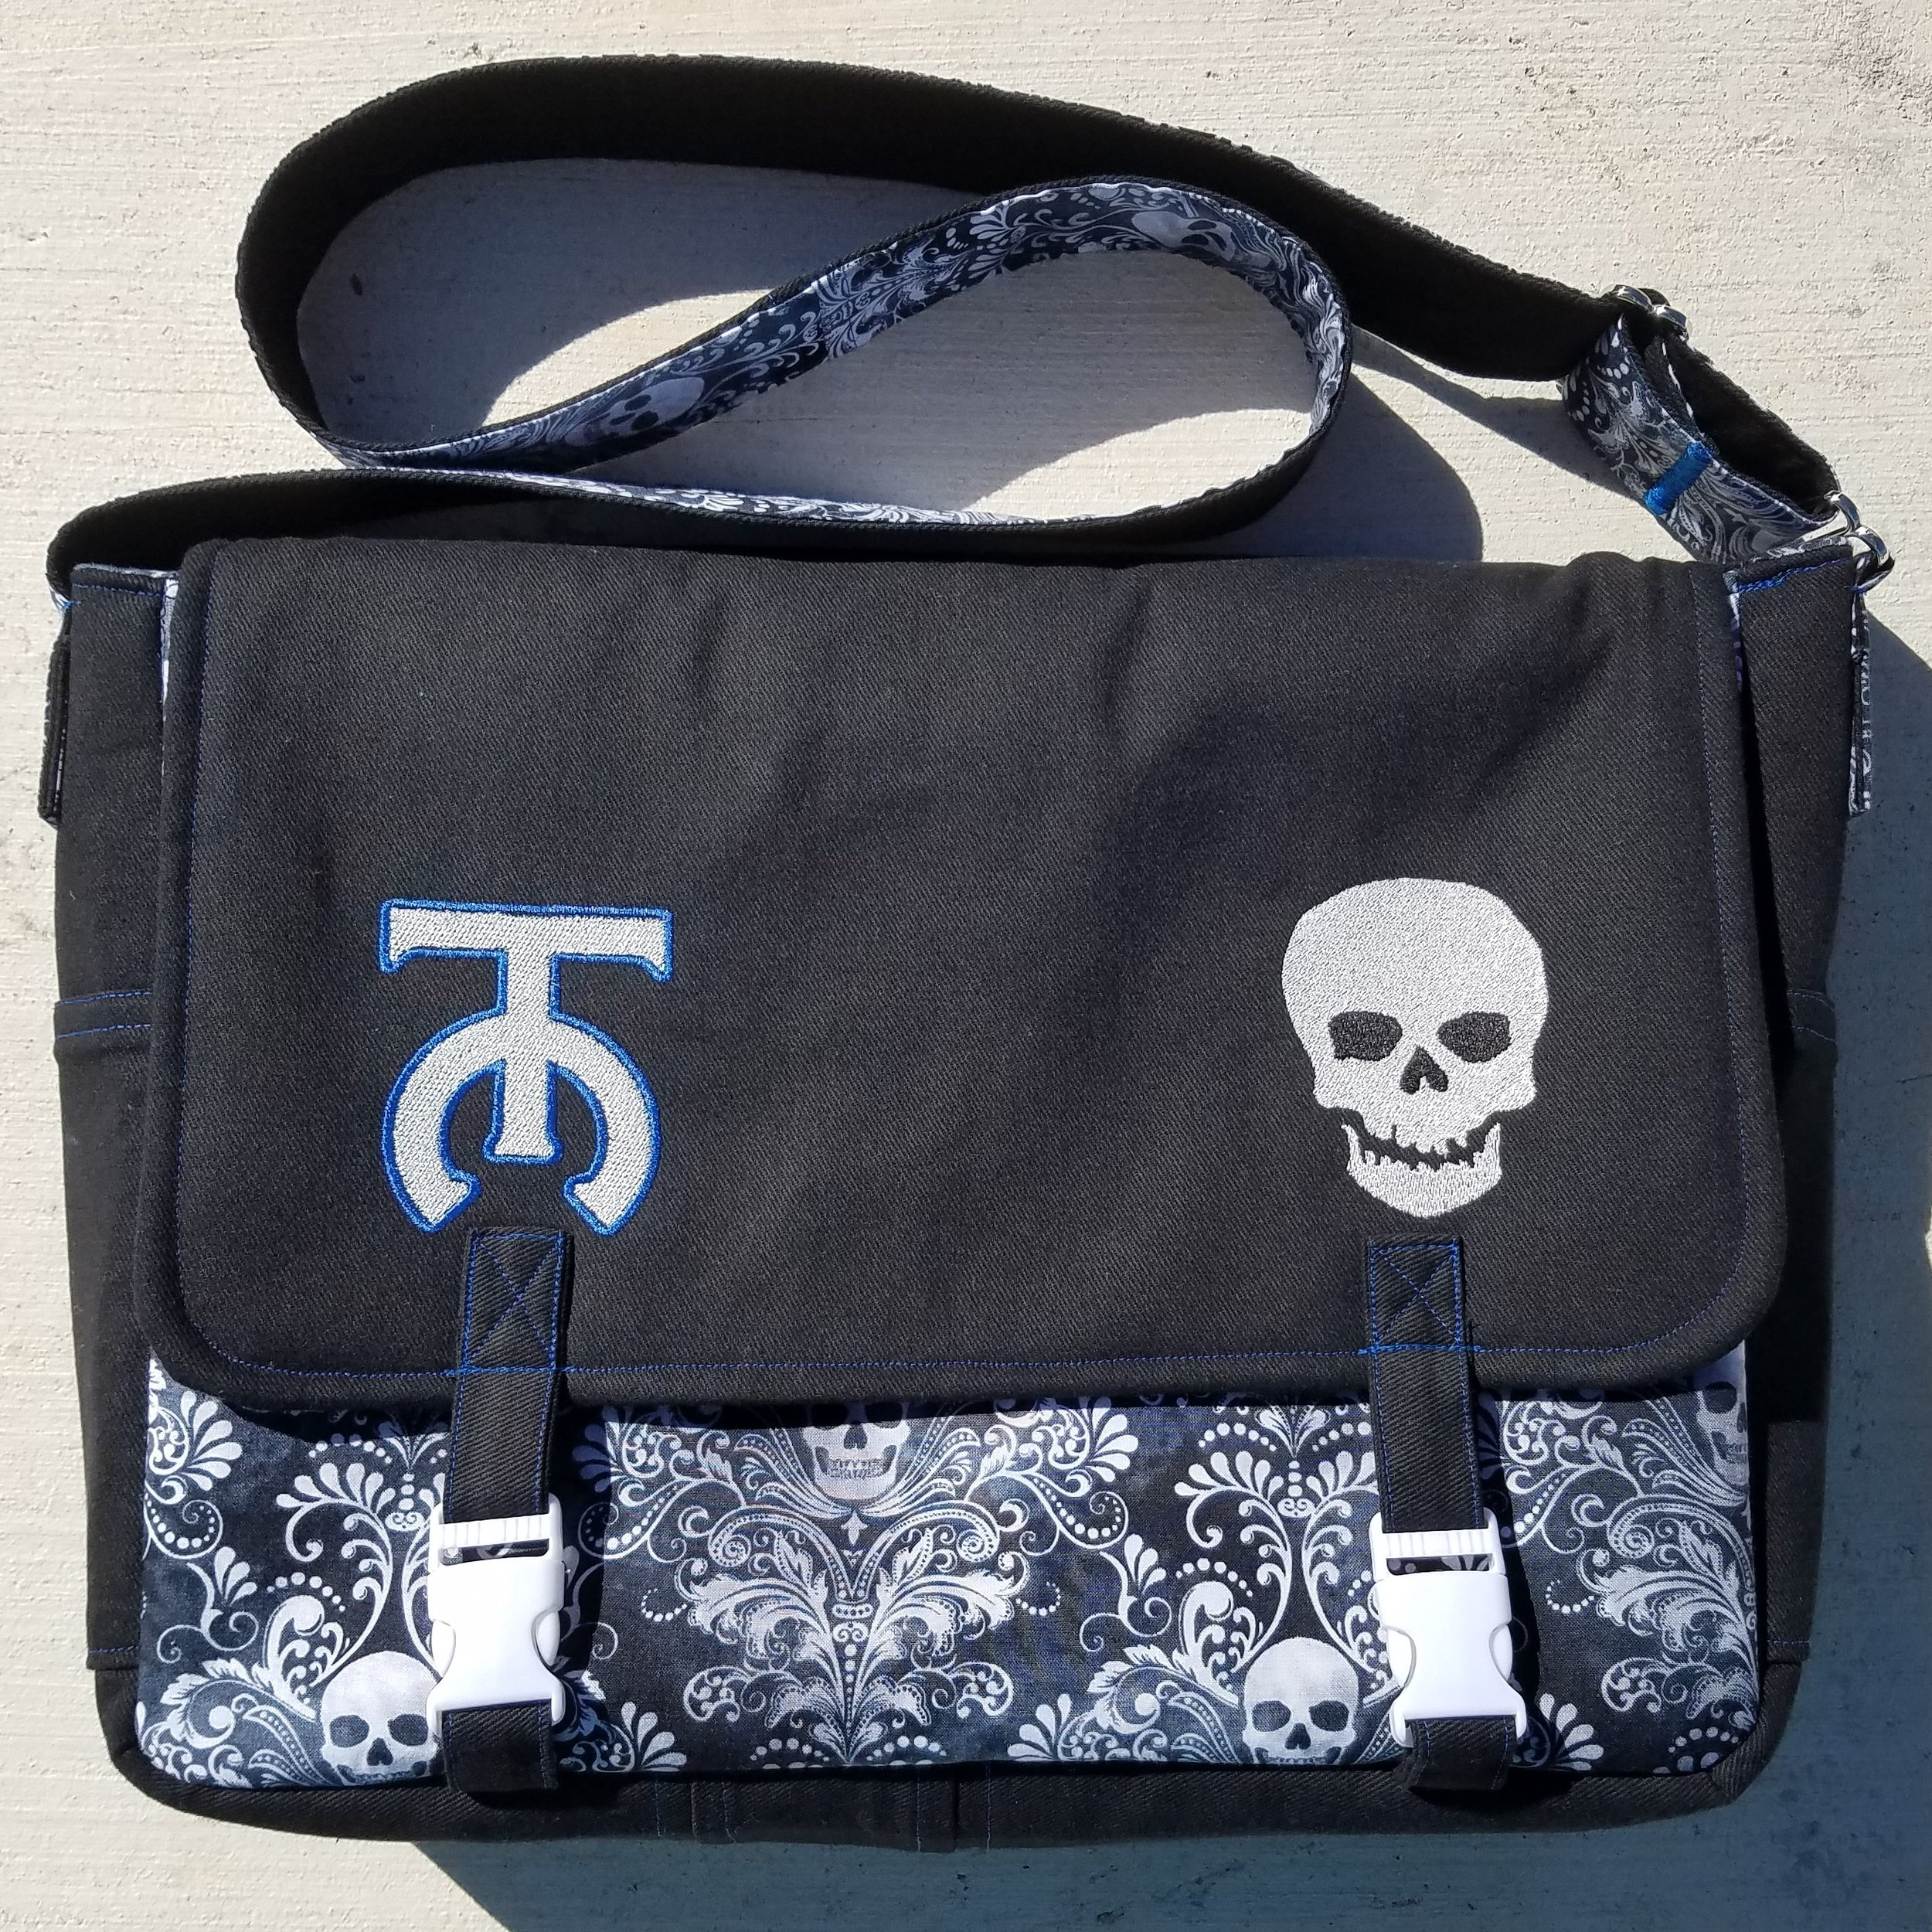 Tock Custom - Skull Bag